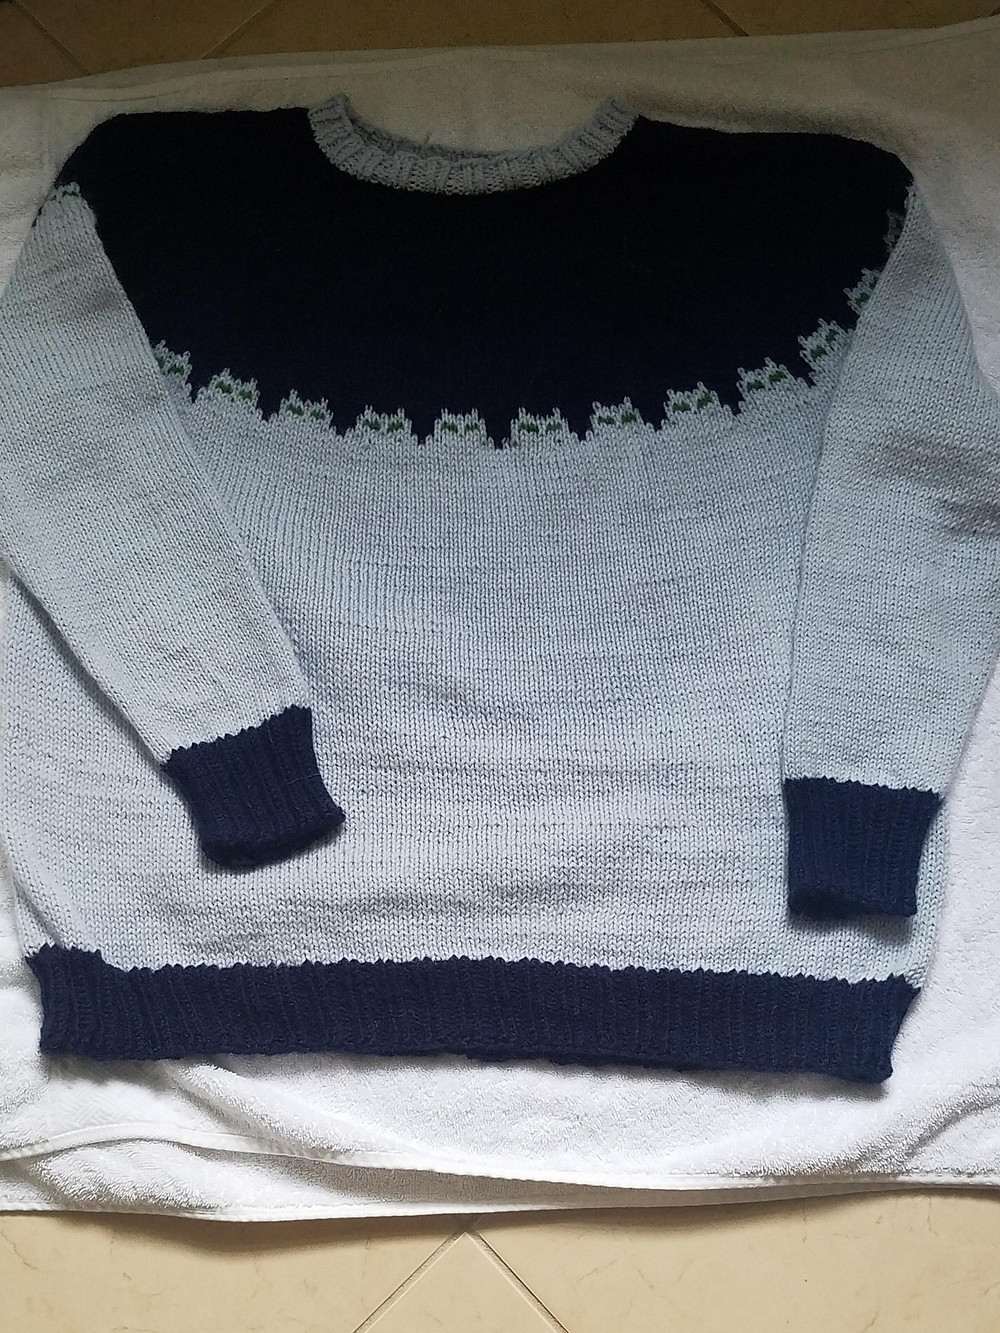 Picture of a long-sleeved light blue grey sweater with a navy-blue yoke and multiple green eyed cats where the yoke and body meet.